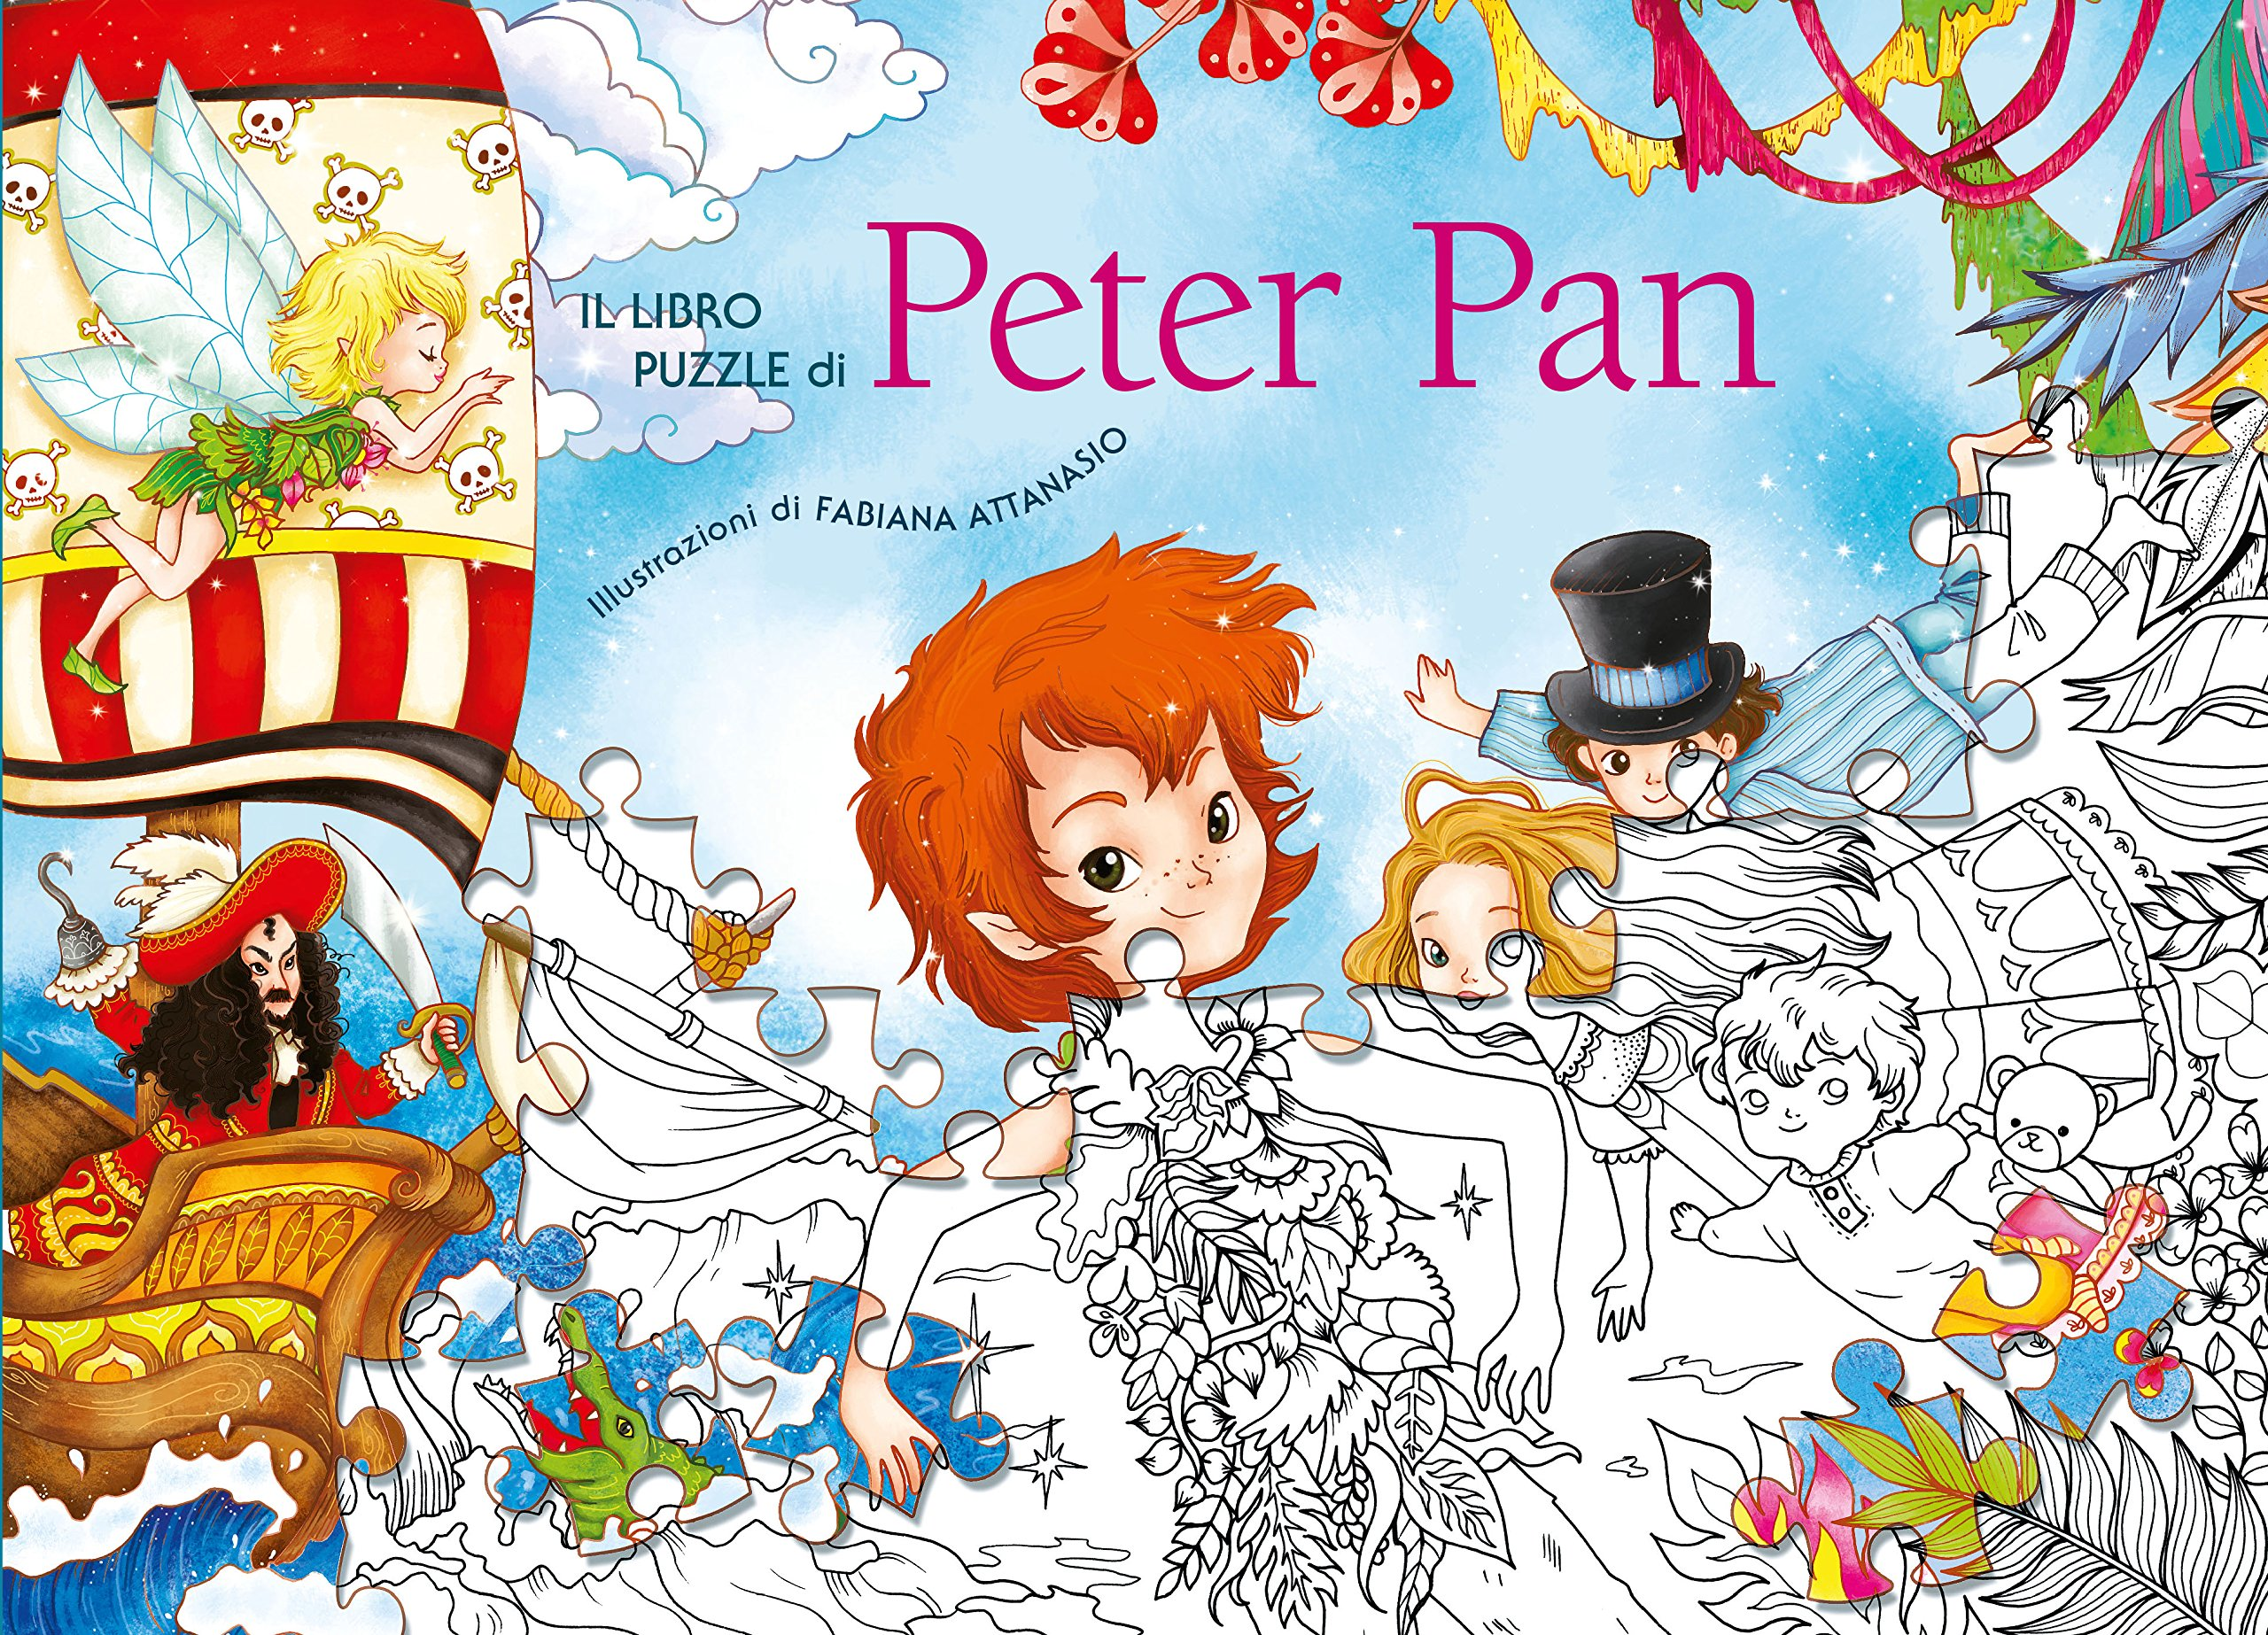 Il Libro Puzzle DiPeter Pan Amazoncouk Fabiana Attanasio A1O QIluj3L 8854032050 Book Peter By